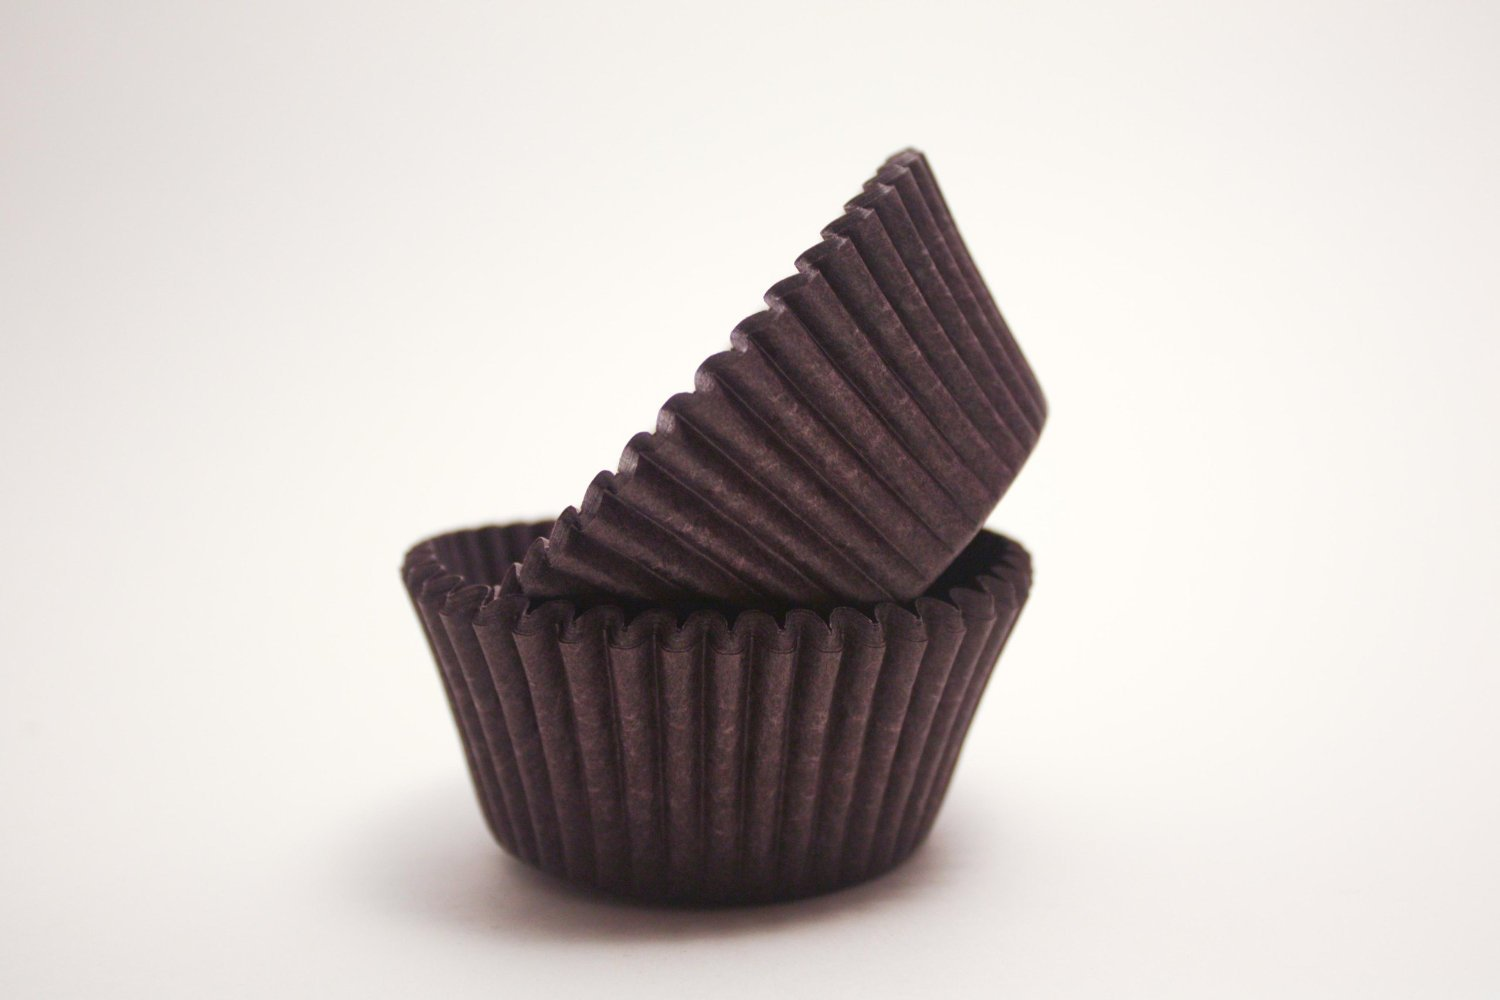 DECONY Brown mini Cupcake Liners Baking Cups, 1-1/2 x 1'' = 3.5 appx. 450-count